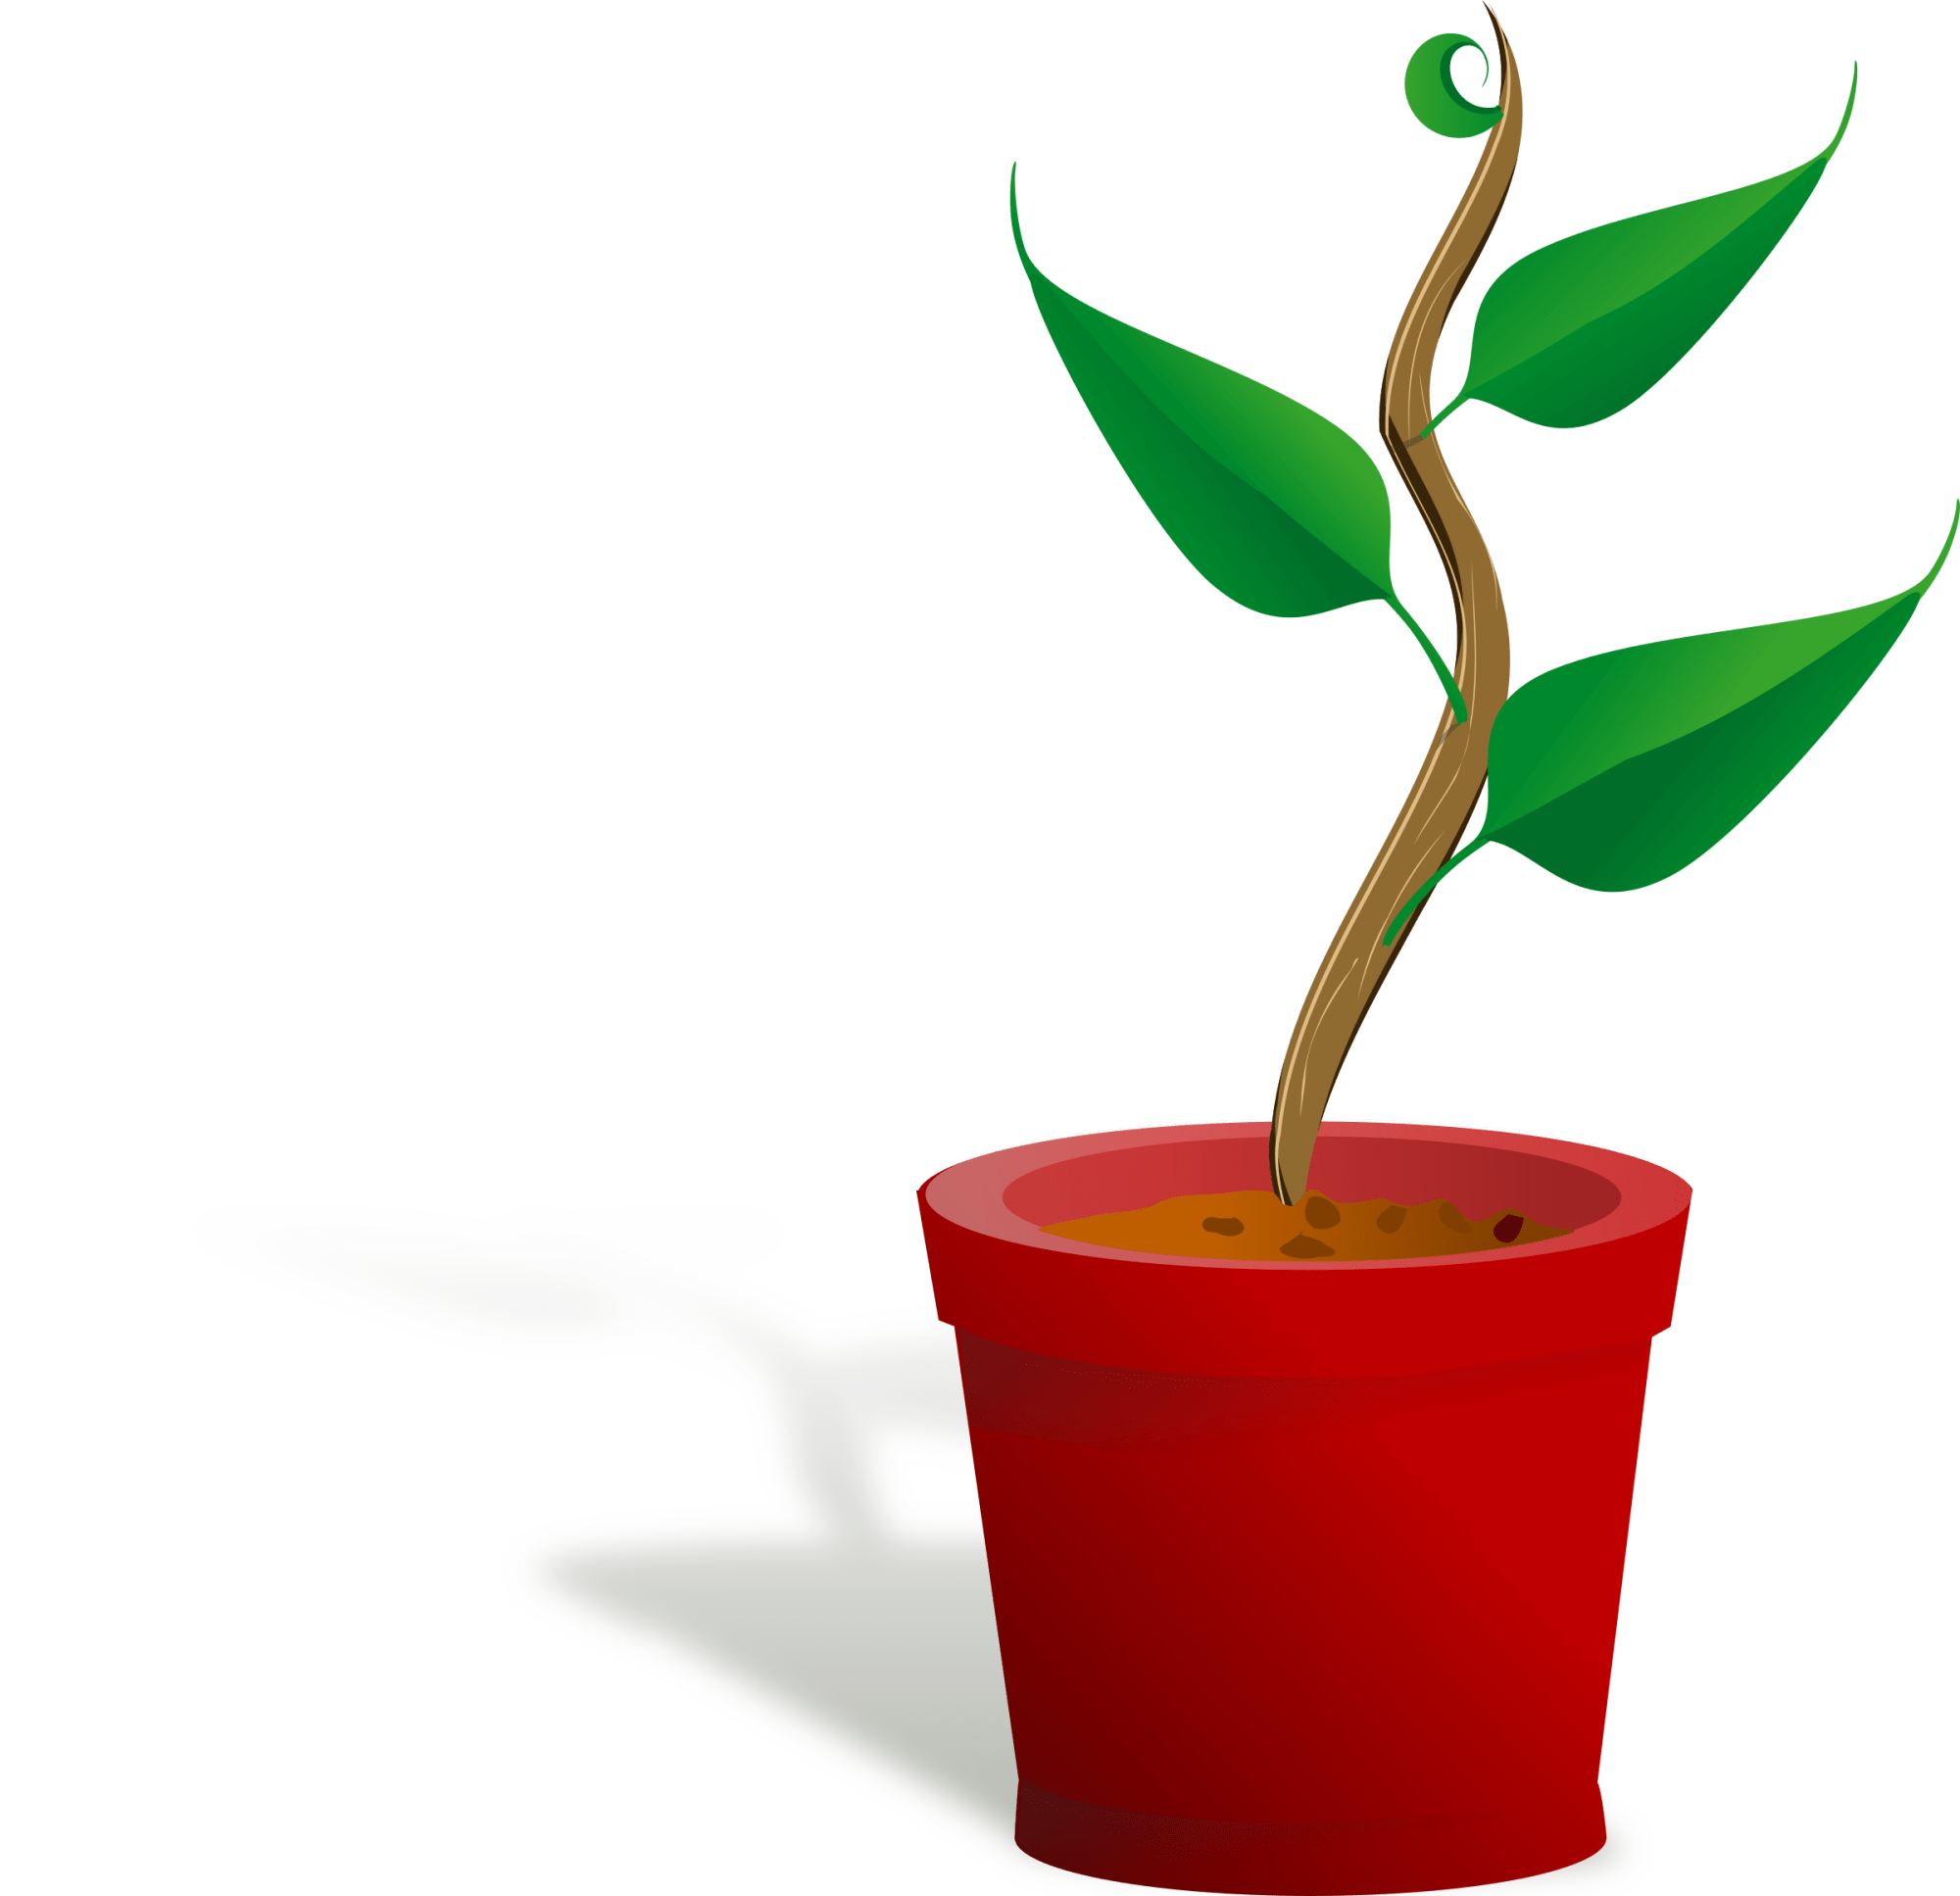 hight resolution of 2400x2322 plant clipart small plant